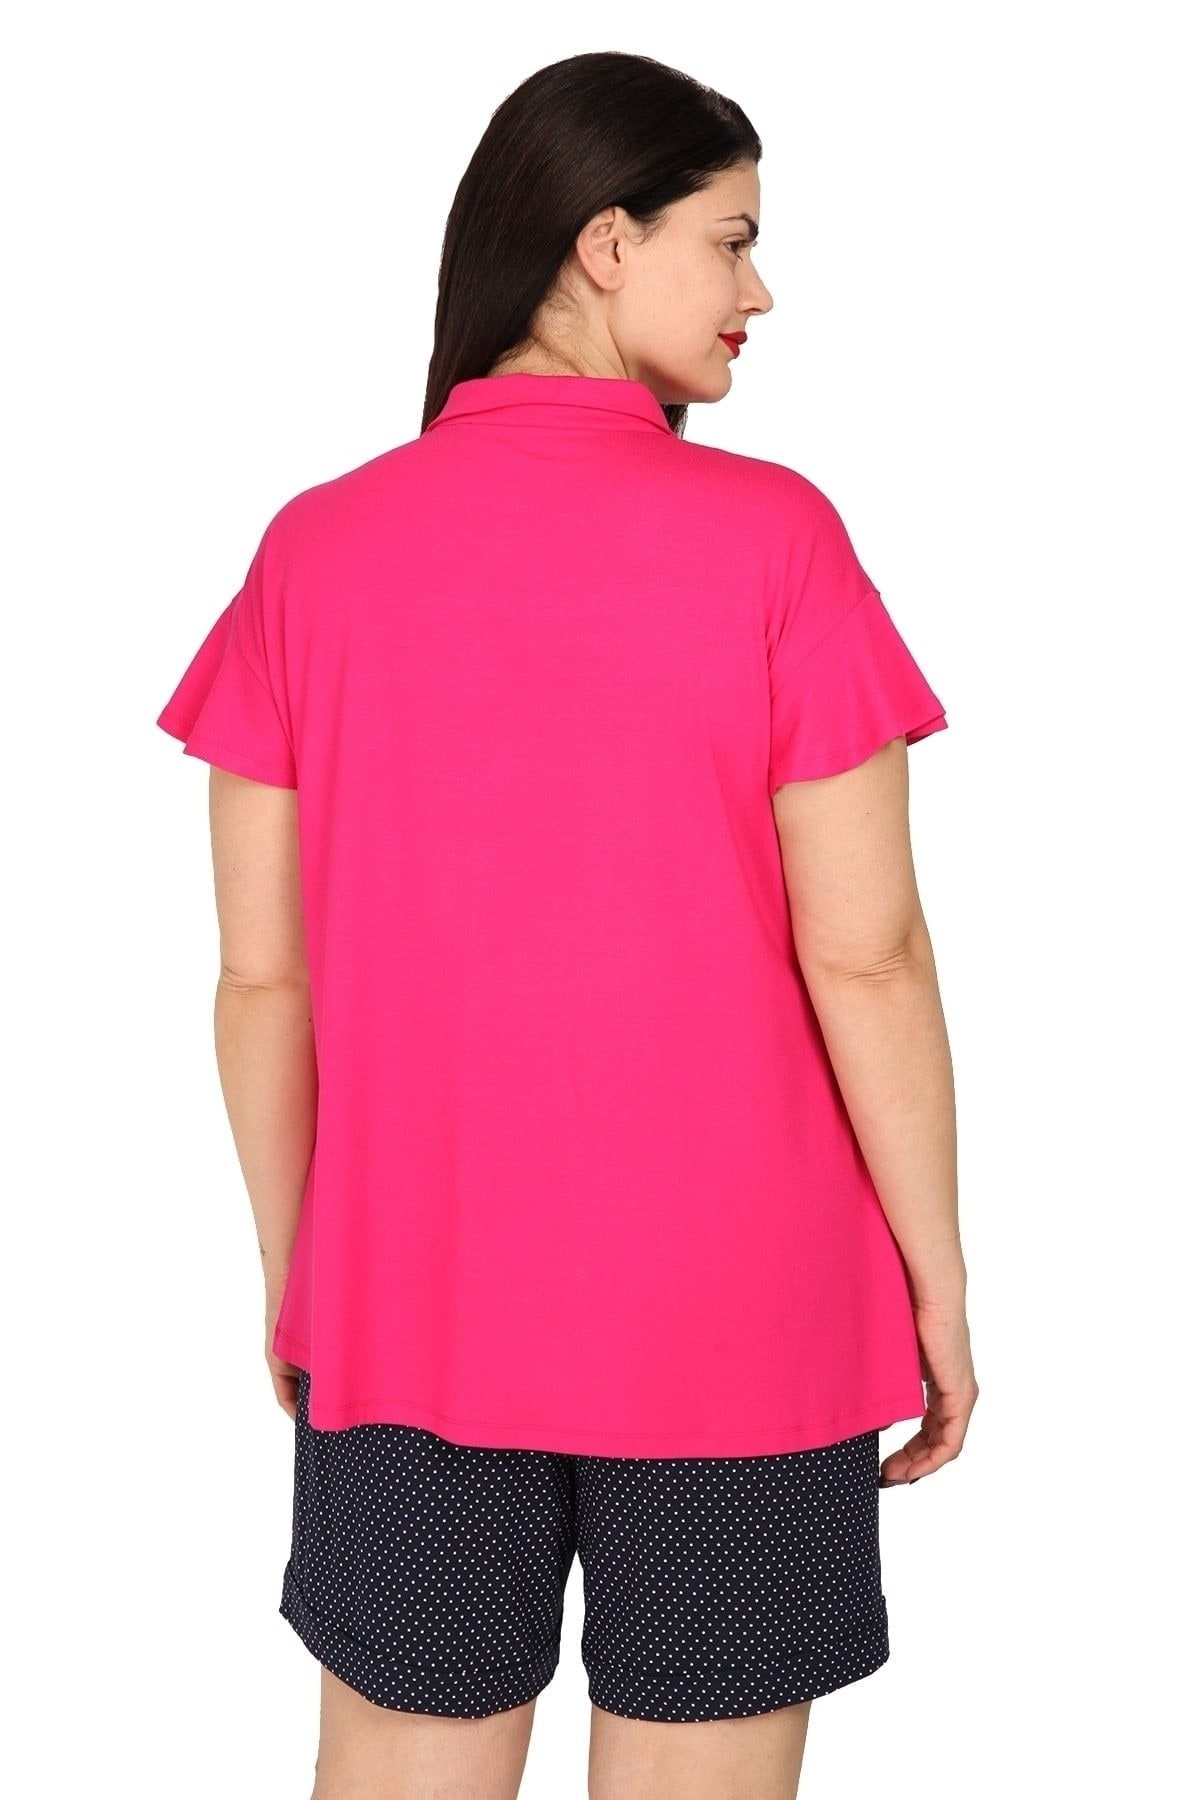 Shirt with flounced sleeves